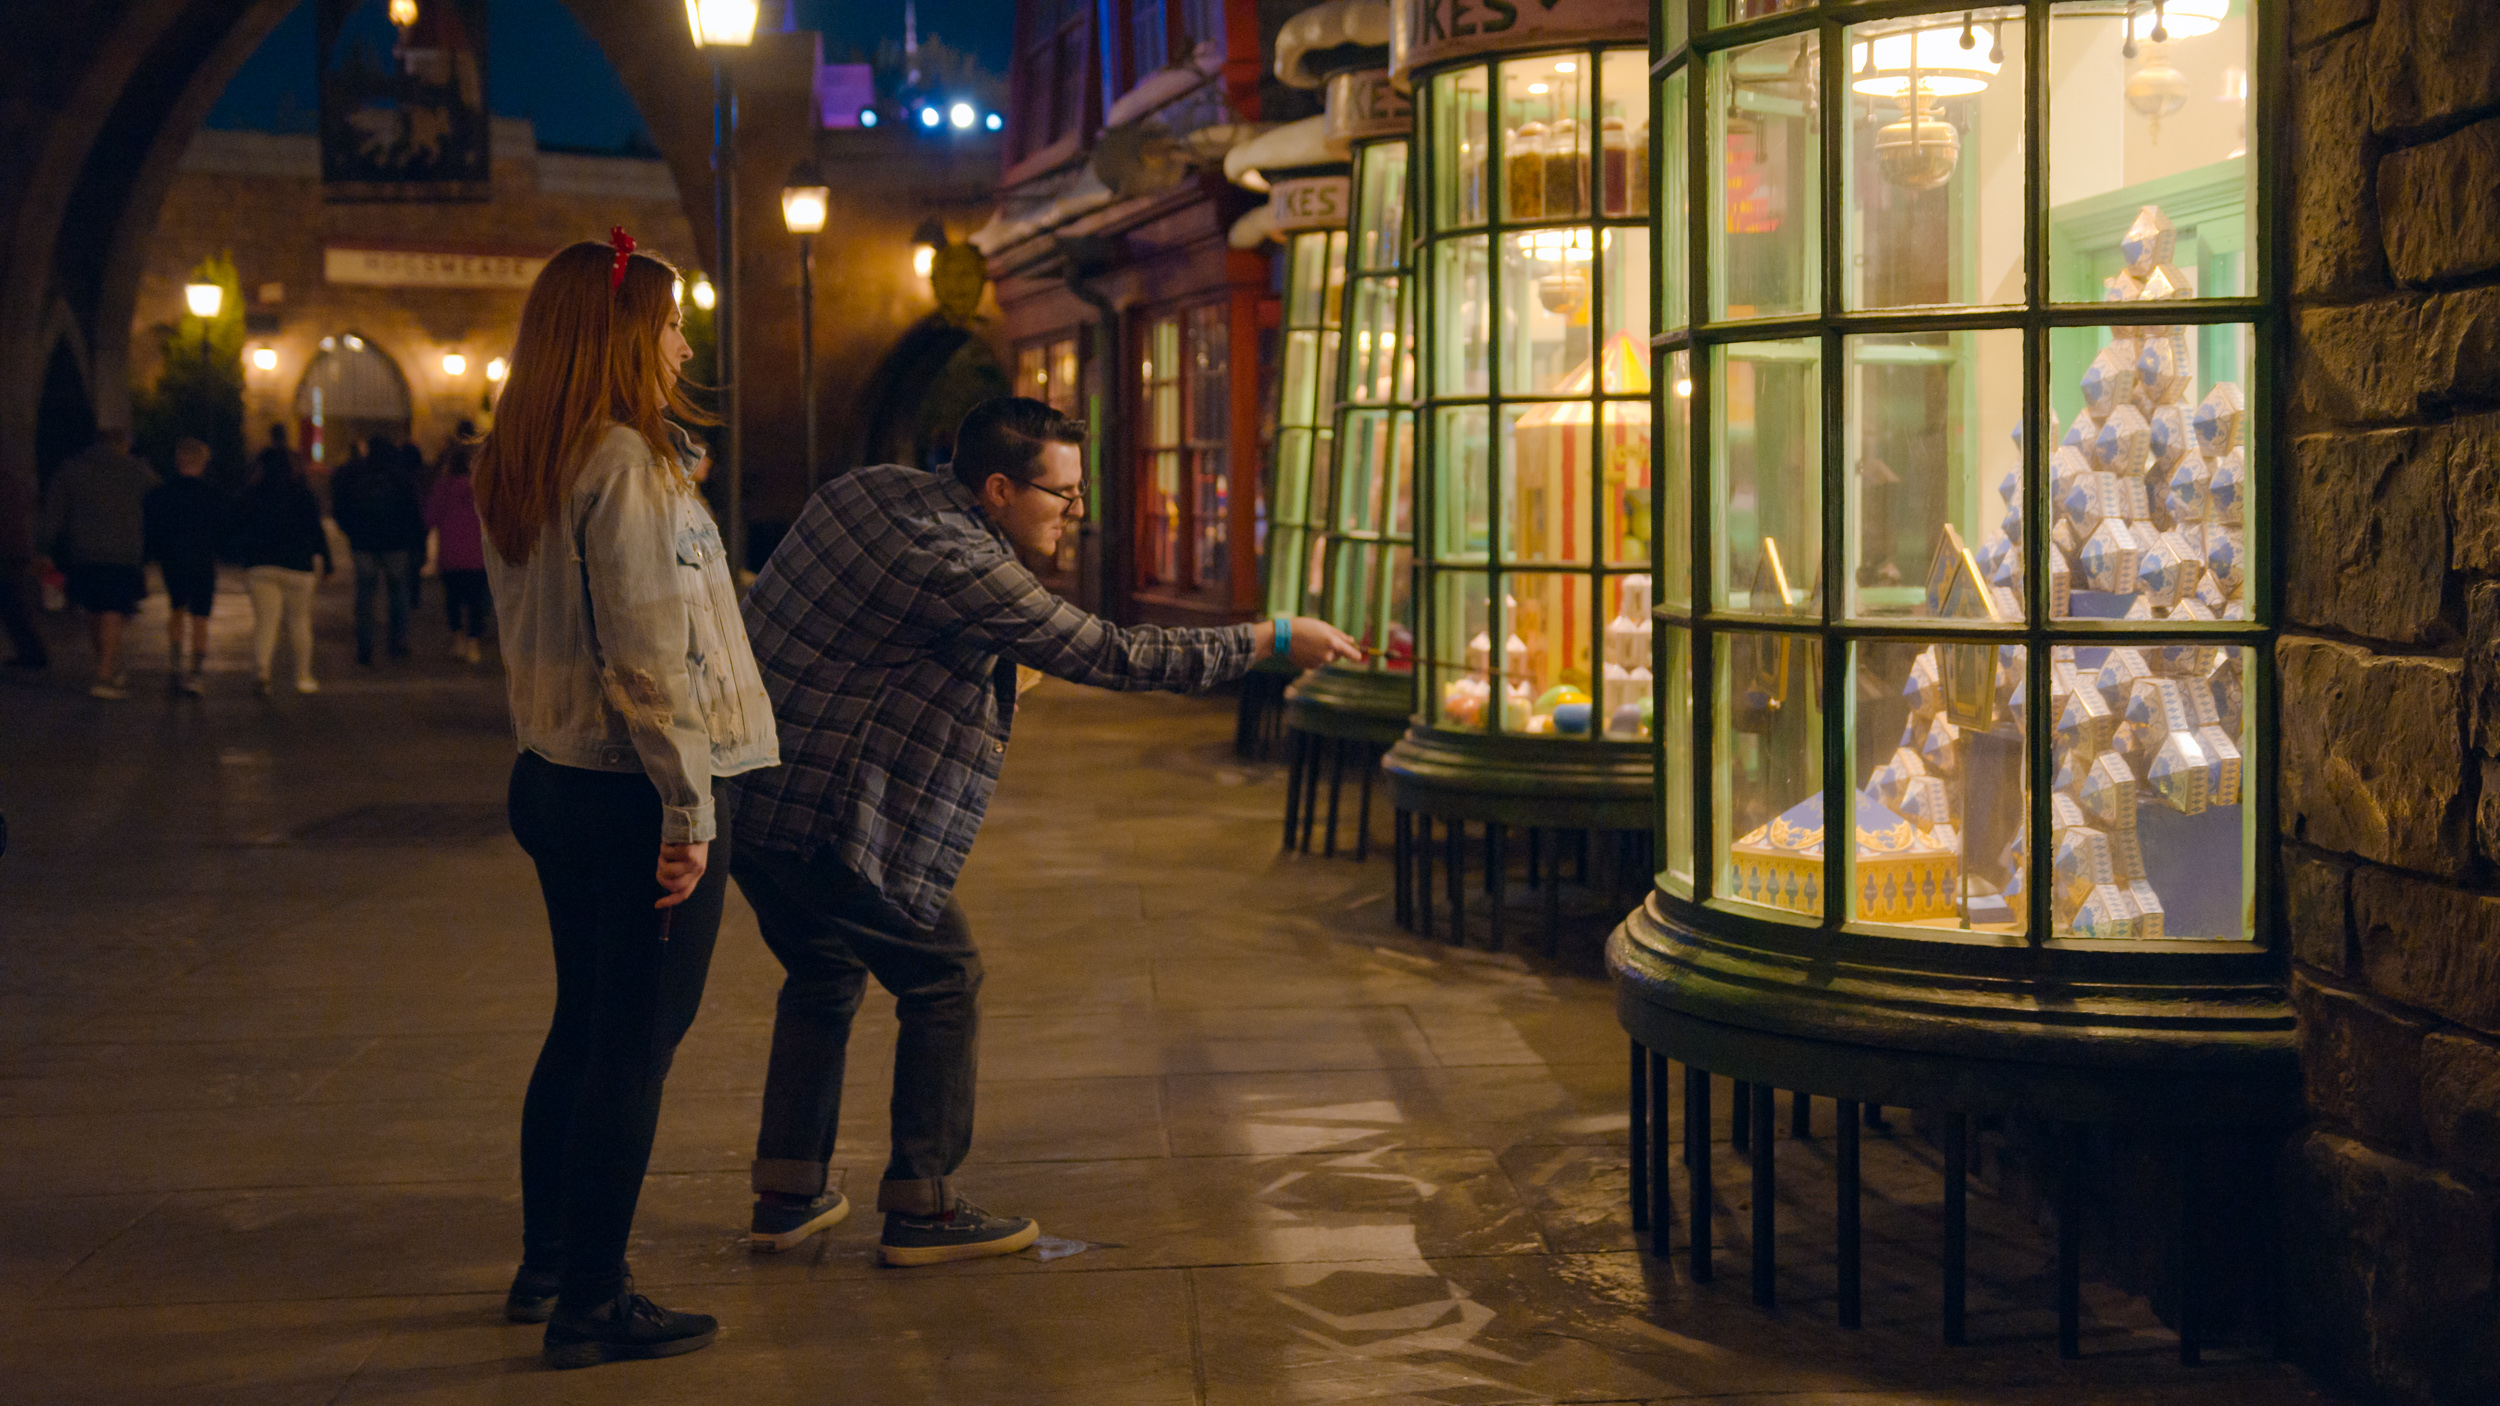 Man waves interactive wand at Harry Potter shop, alongside a woman